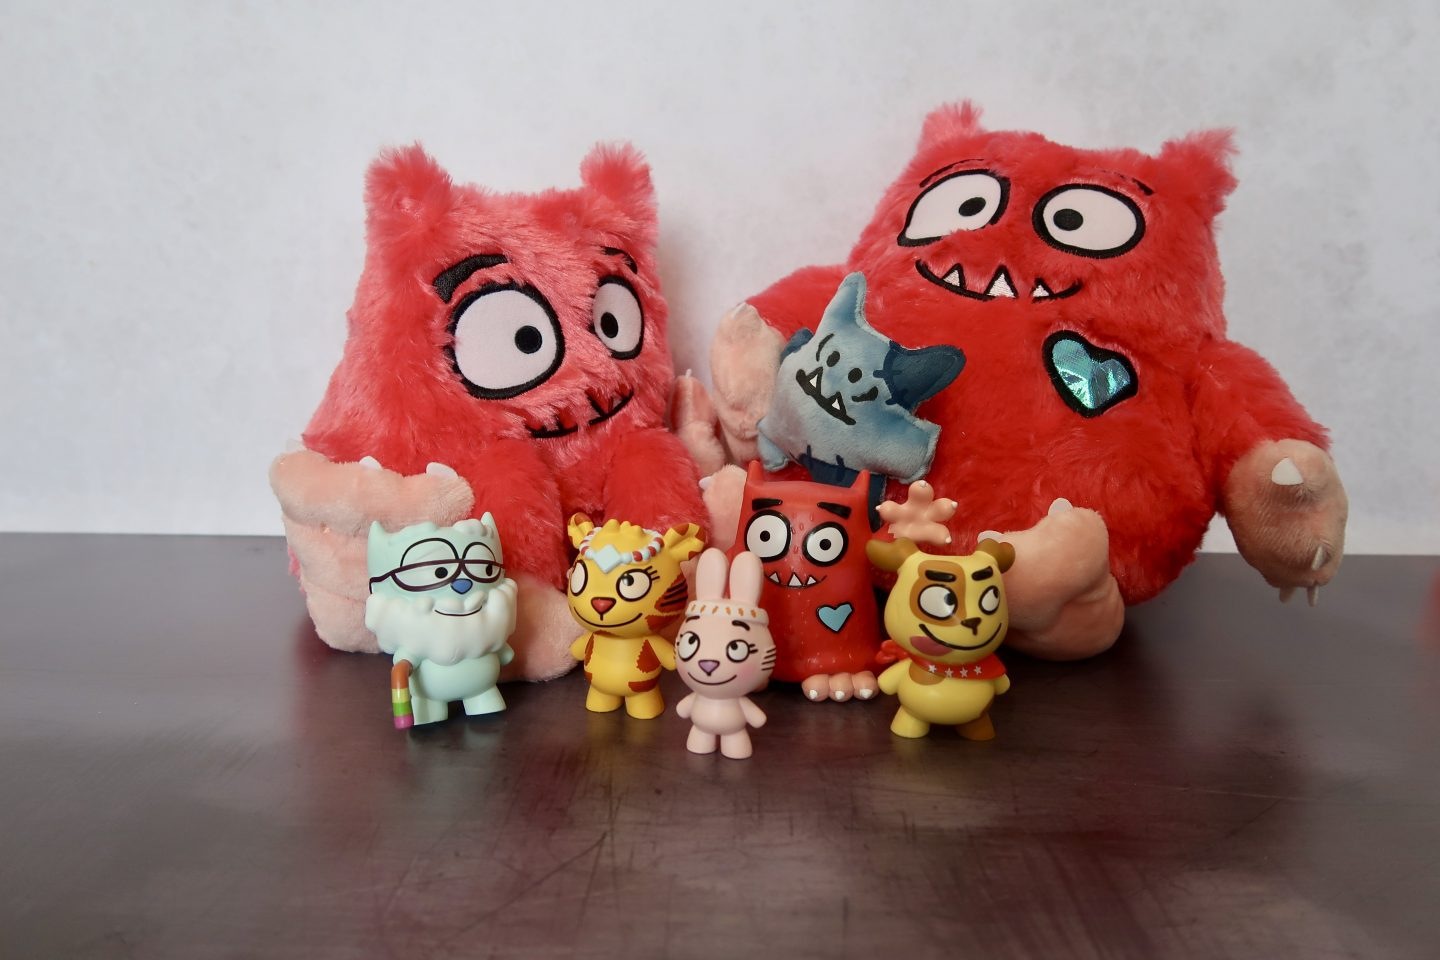 Two stuffed monster toys and 5 little plastic animal figurines